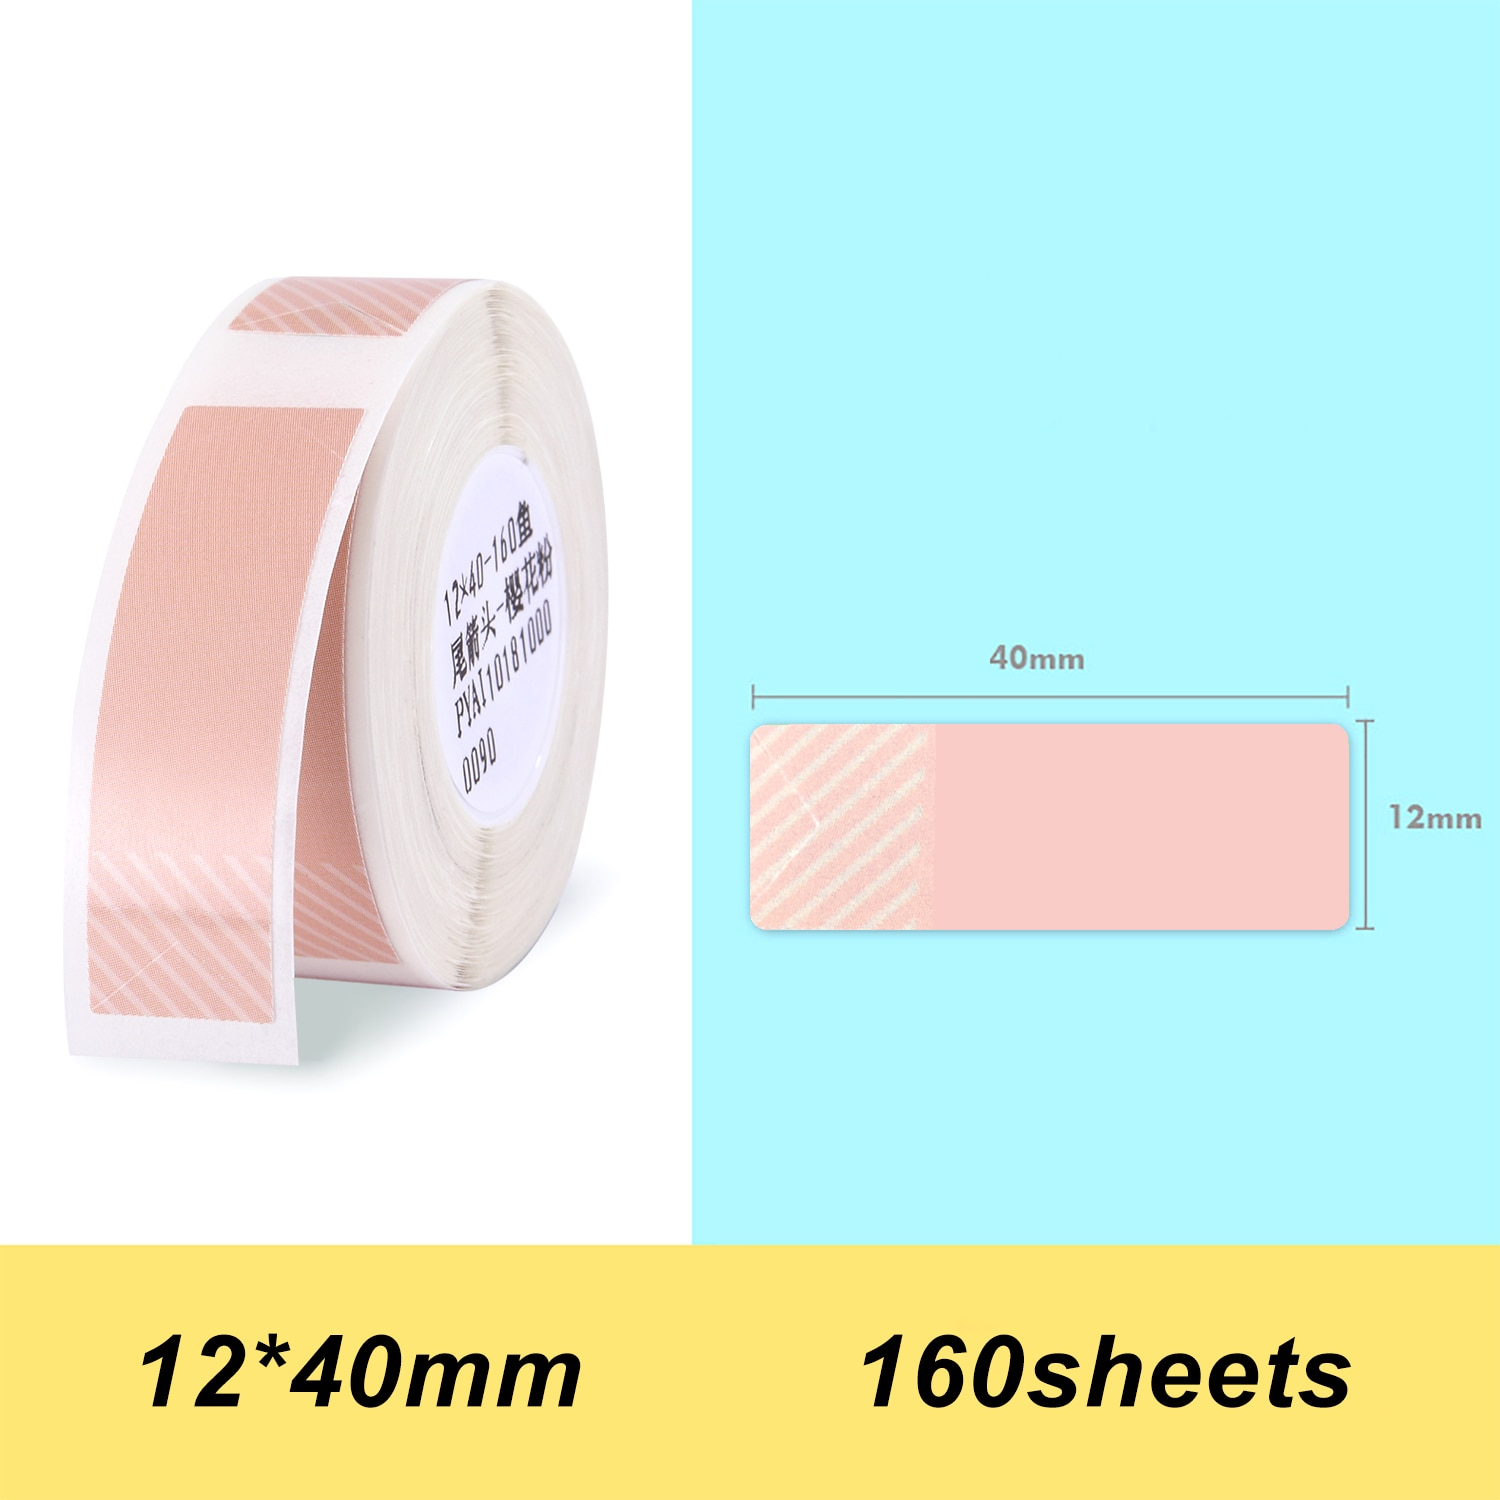 Thermal Printing Label Paper Price Name Labels Waterproof Tear Resistant 12*40mm 160pcs/roll for Home Book File Supermarket